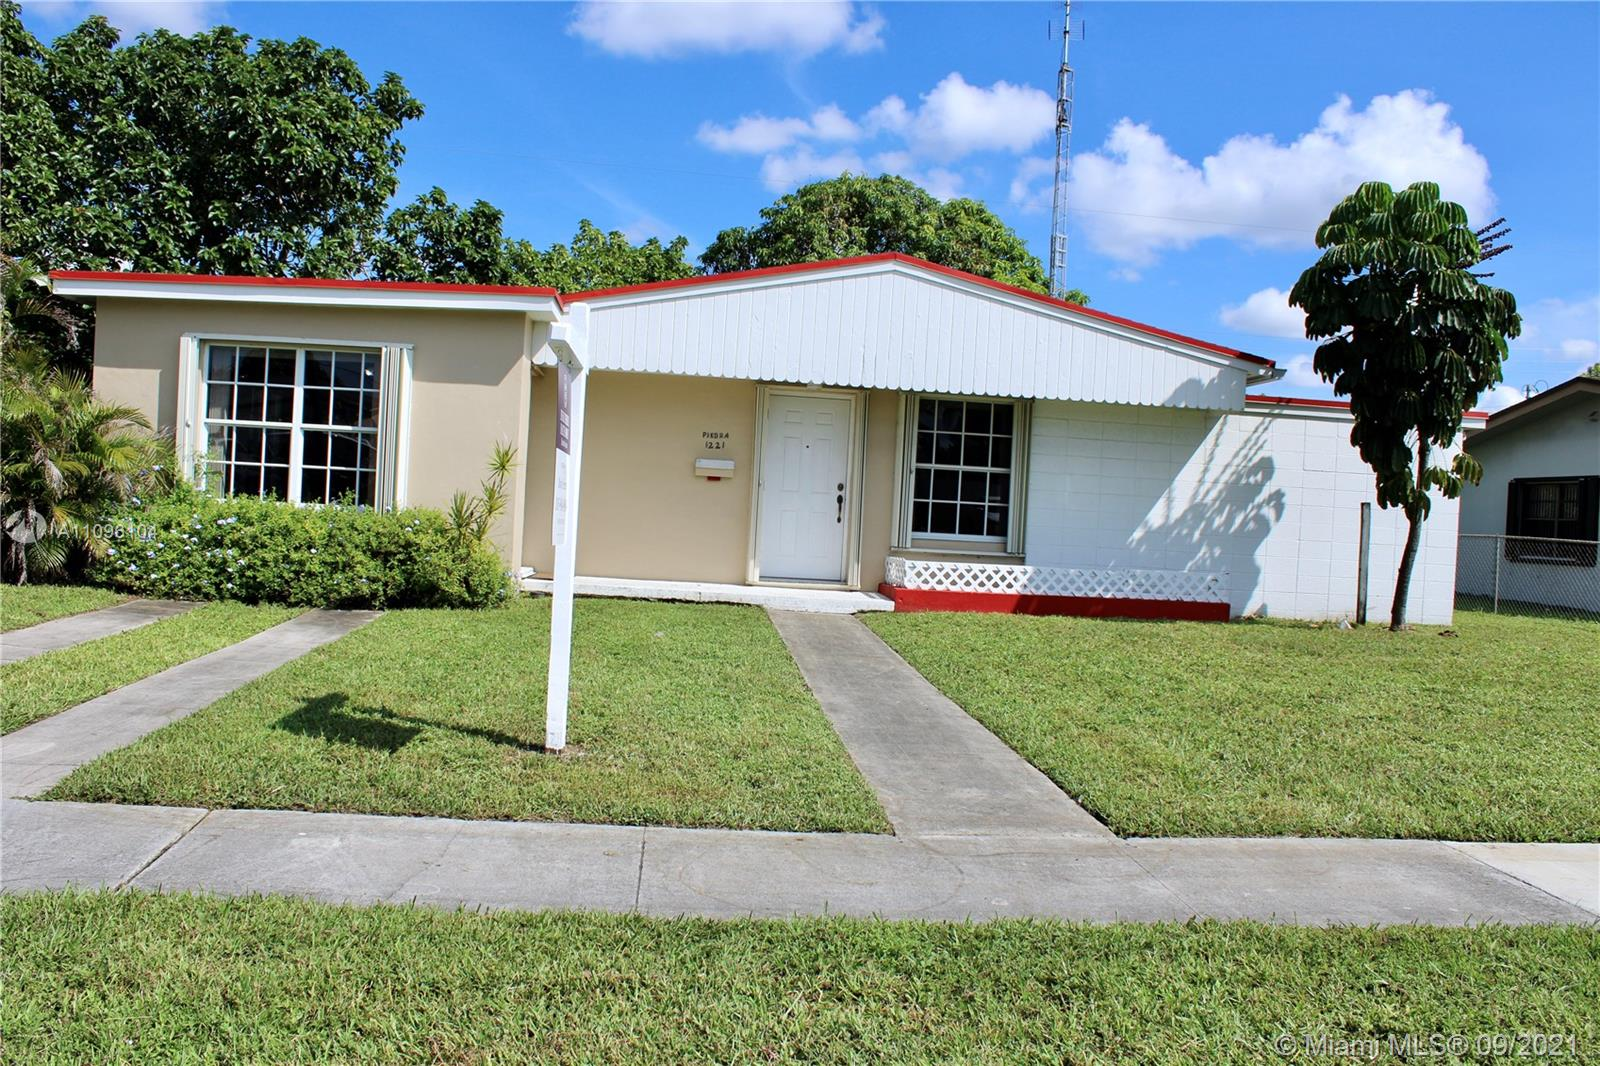 Westhaven Heights - 1221 W 63rd St, Hialeah, FL 33012